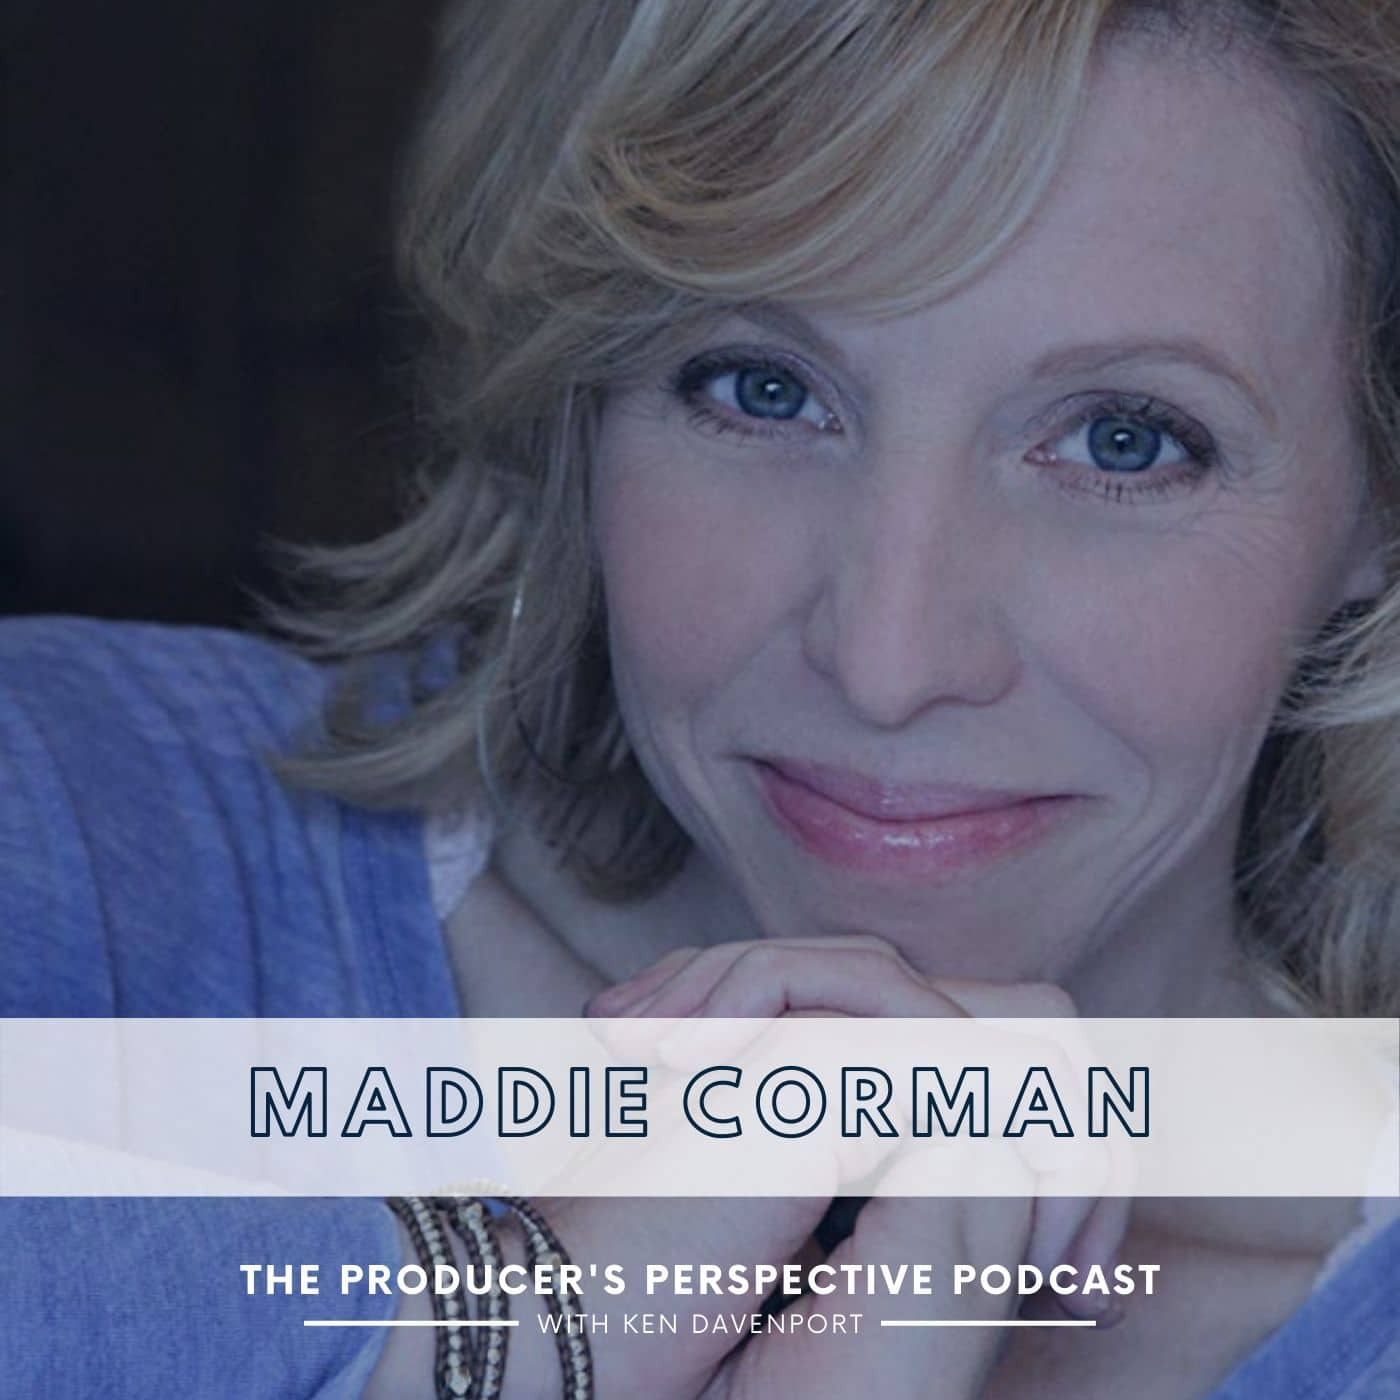 The Producer's Perspective Episode 208 Maddie Corman